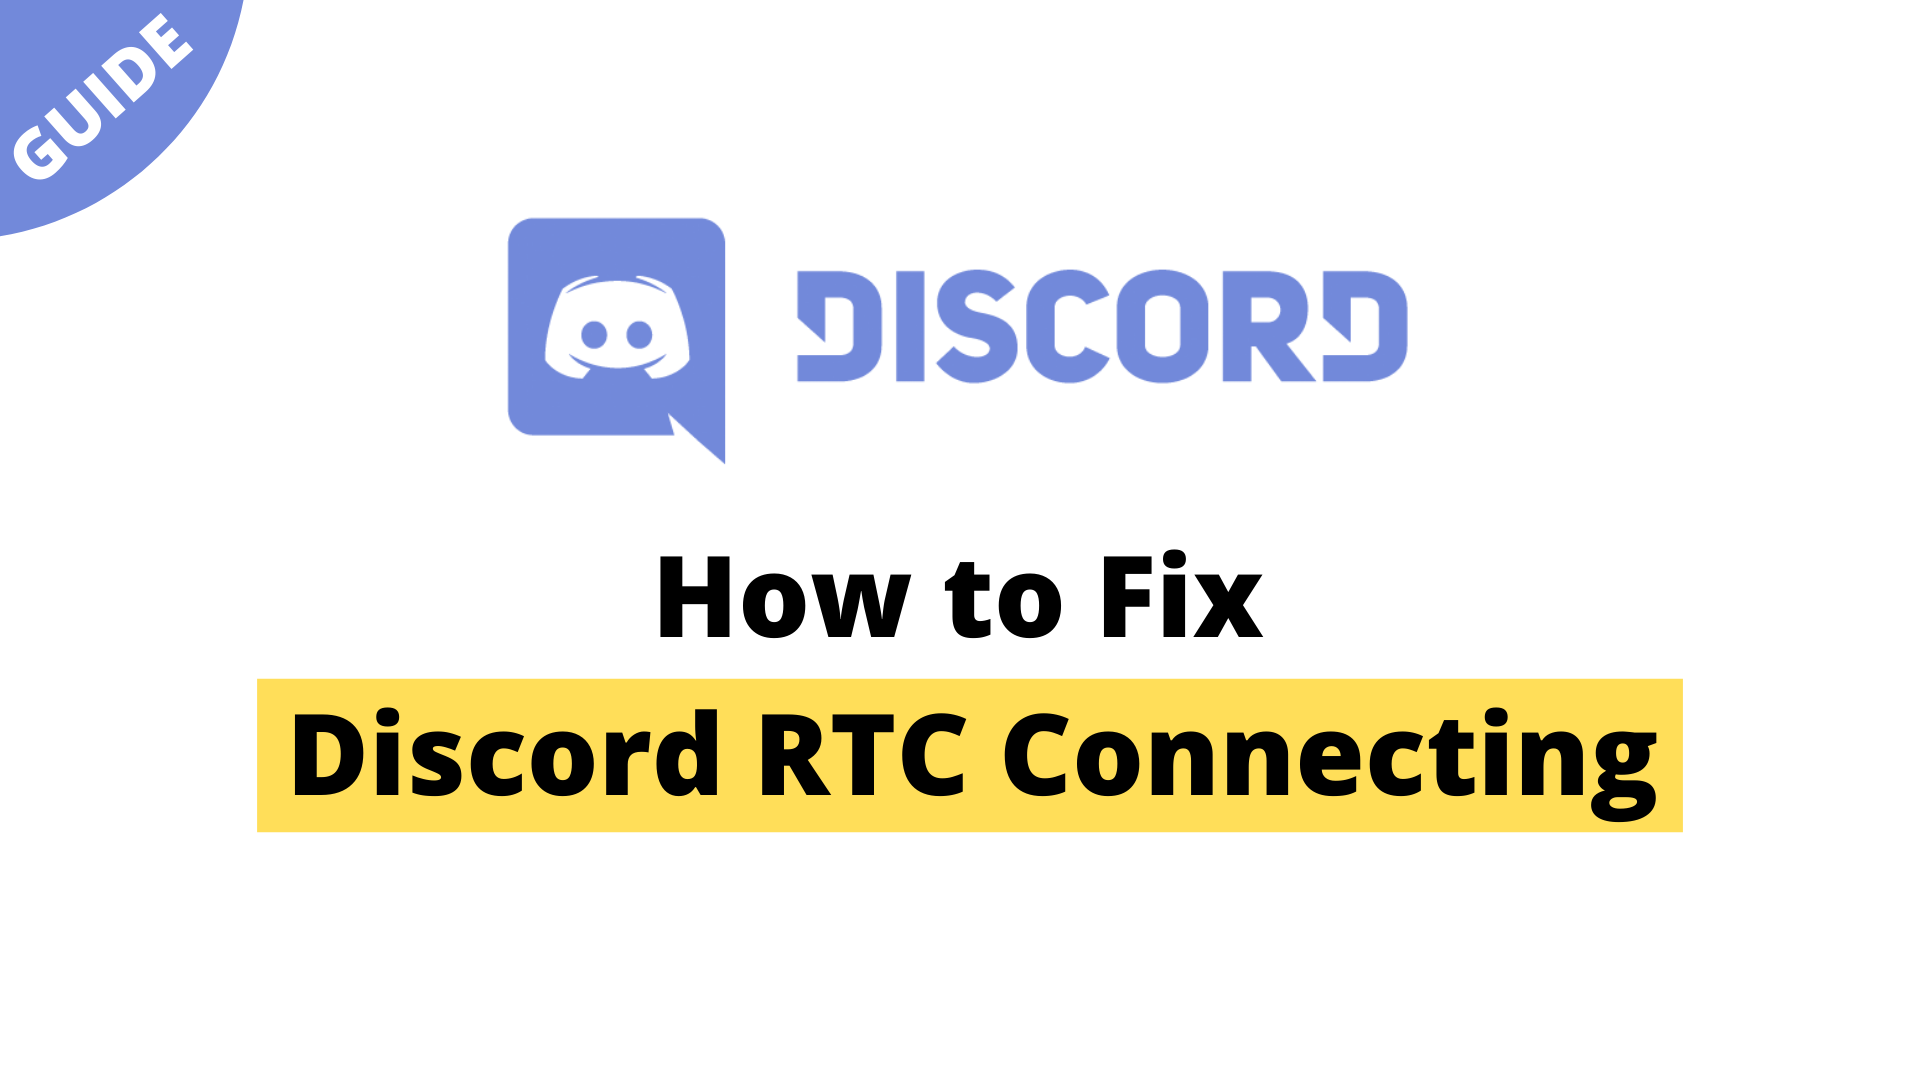 How to Fix Discord RTC Connecting